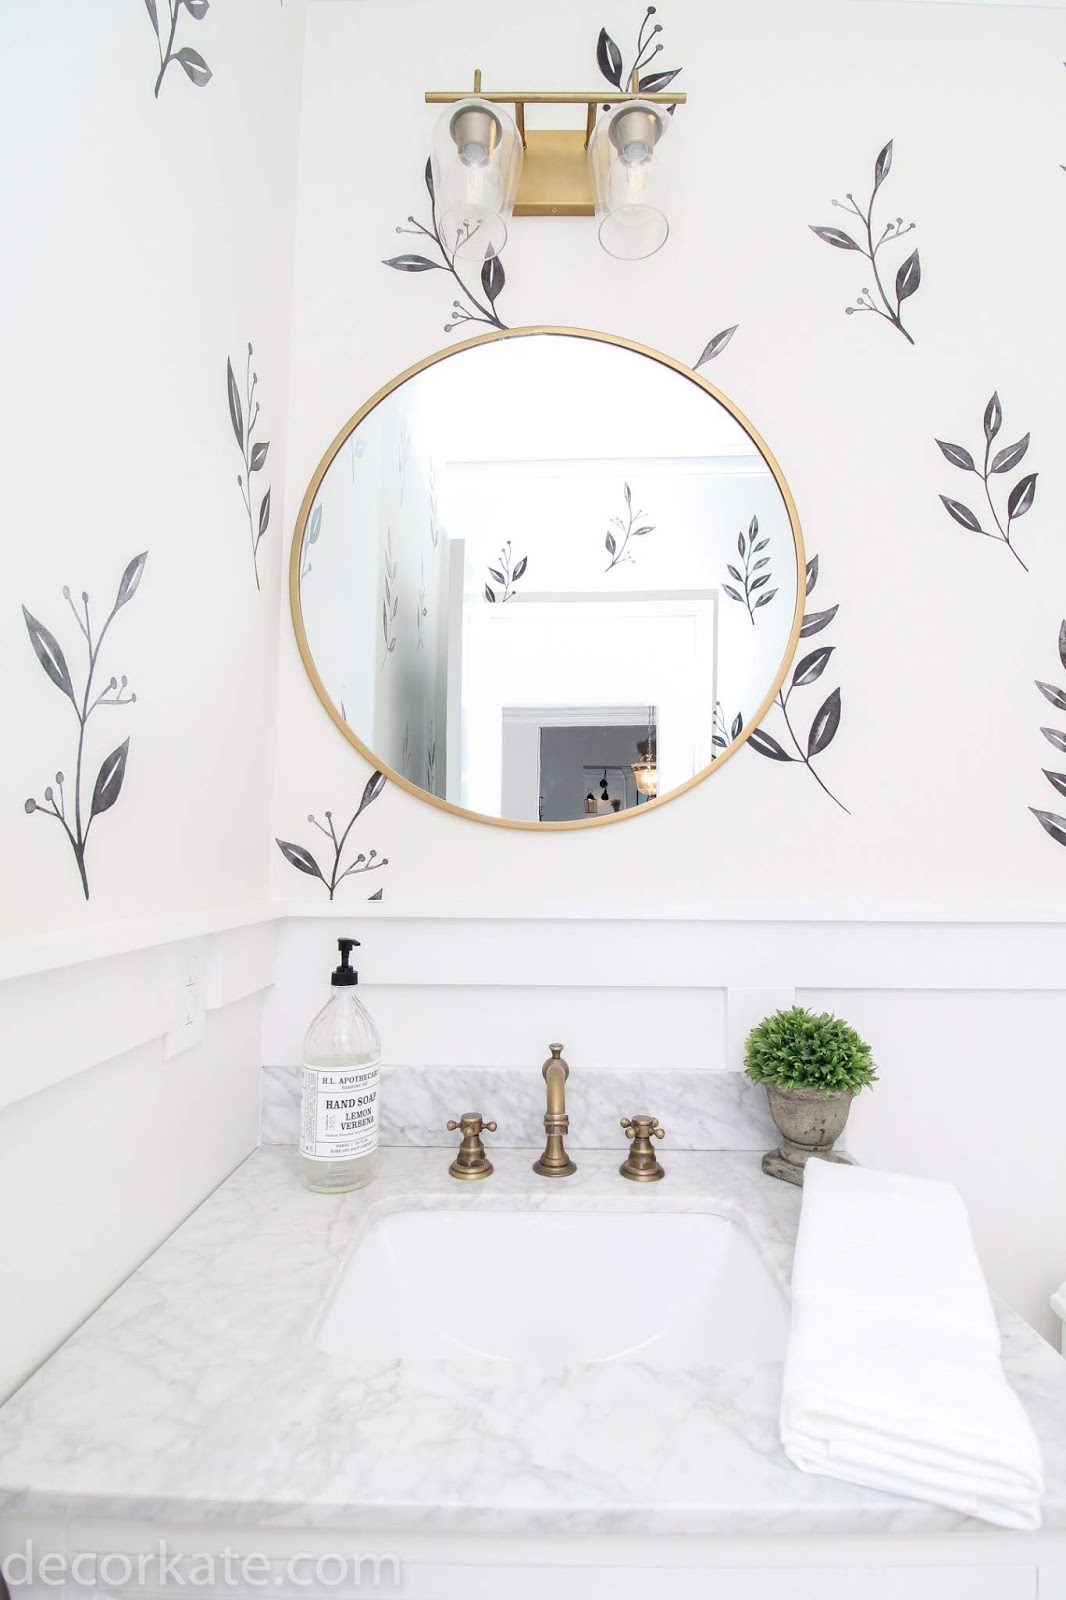 Adding design to walls without wallpaper